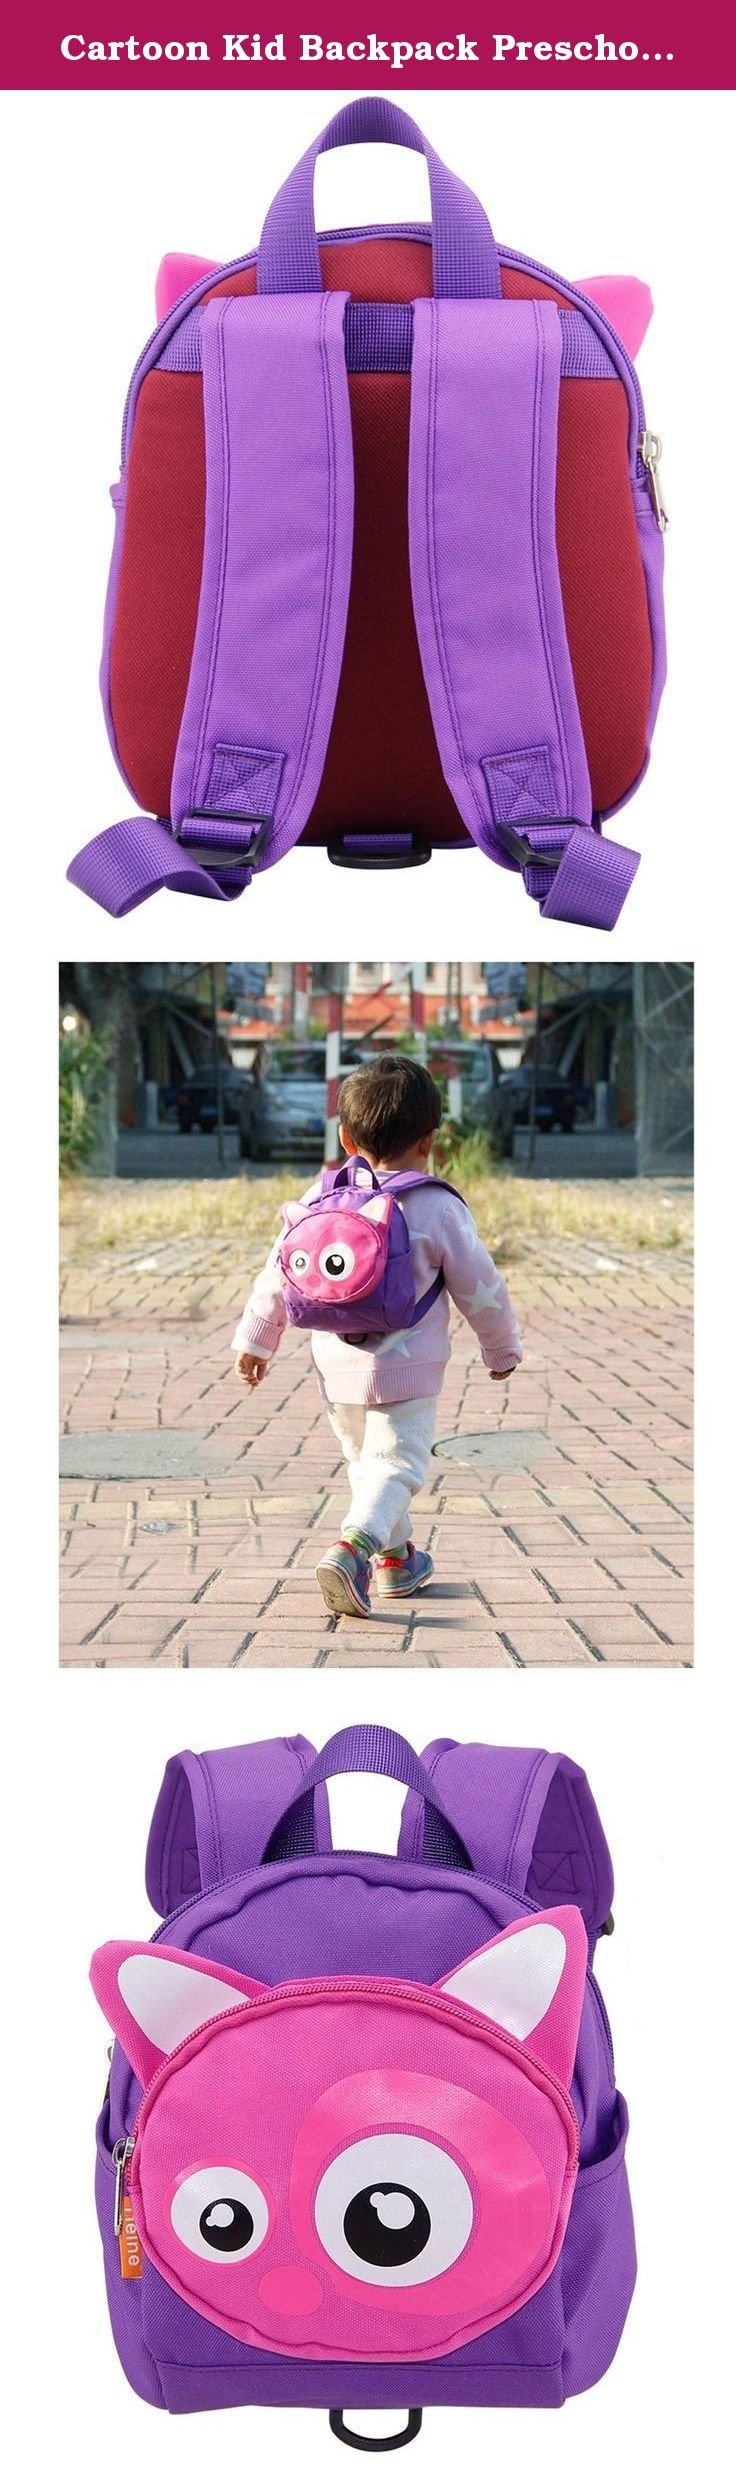 Cartoon Kid Backpack Preschool Backpack for Boy Girl (Purple Fox). Material:Nylon(waterproof,easy wash). Suitable age:10 months -3 years old. BPA free, Phthalate free, PVC free,PD free. Remove tether to become a mini backpack. Padded,adjustable comfy shoulder strap.